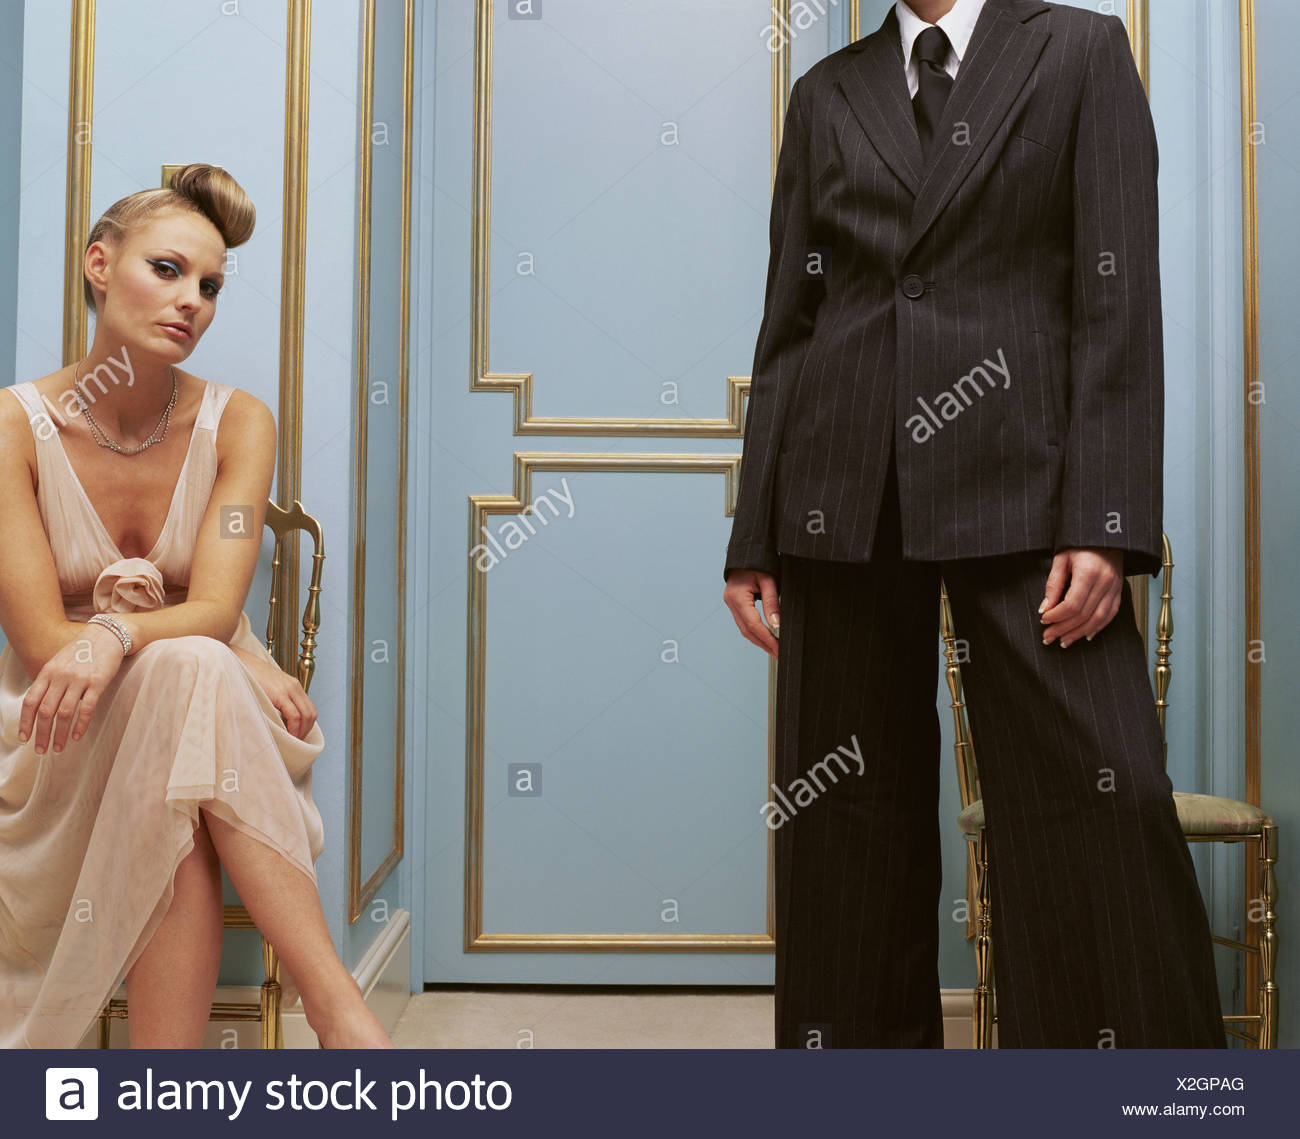 Women in masculine and feminine clothing - Stock Image